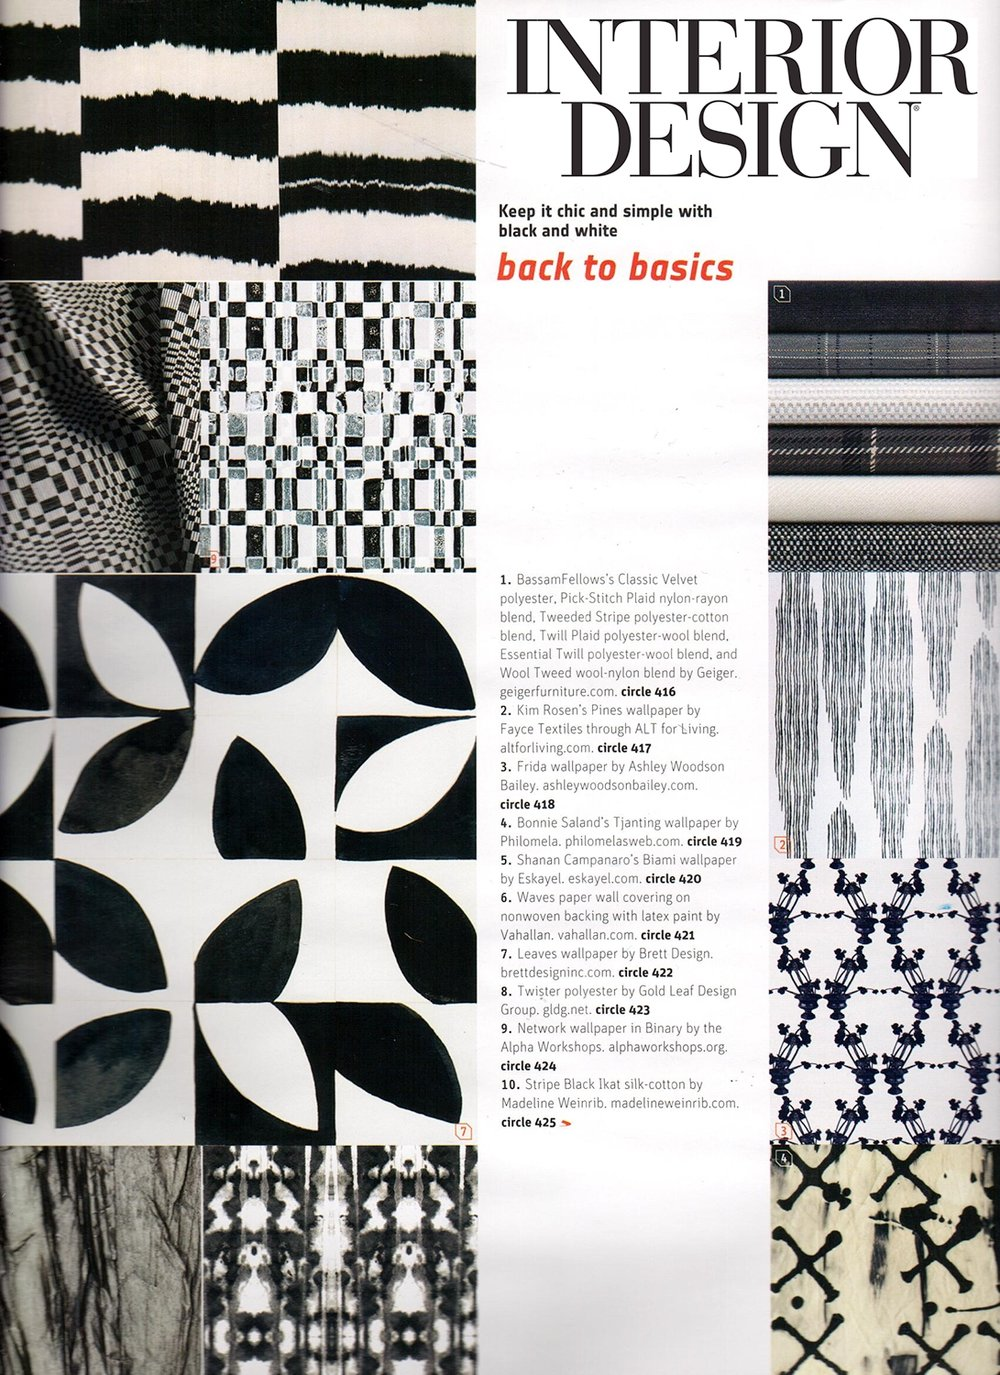 Interior-Design-Mag-May-2017.jpg